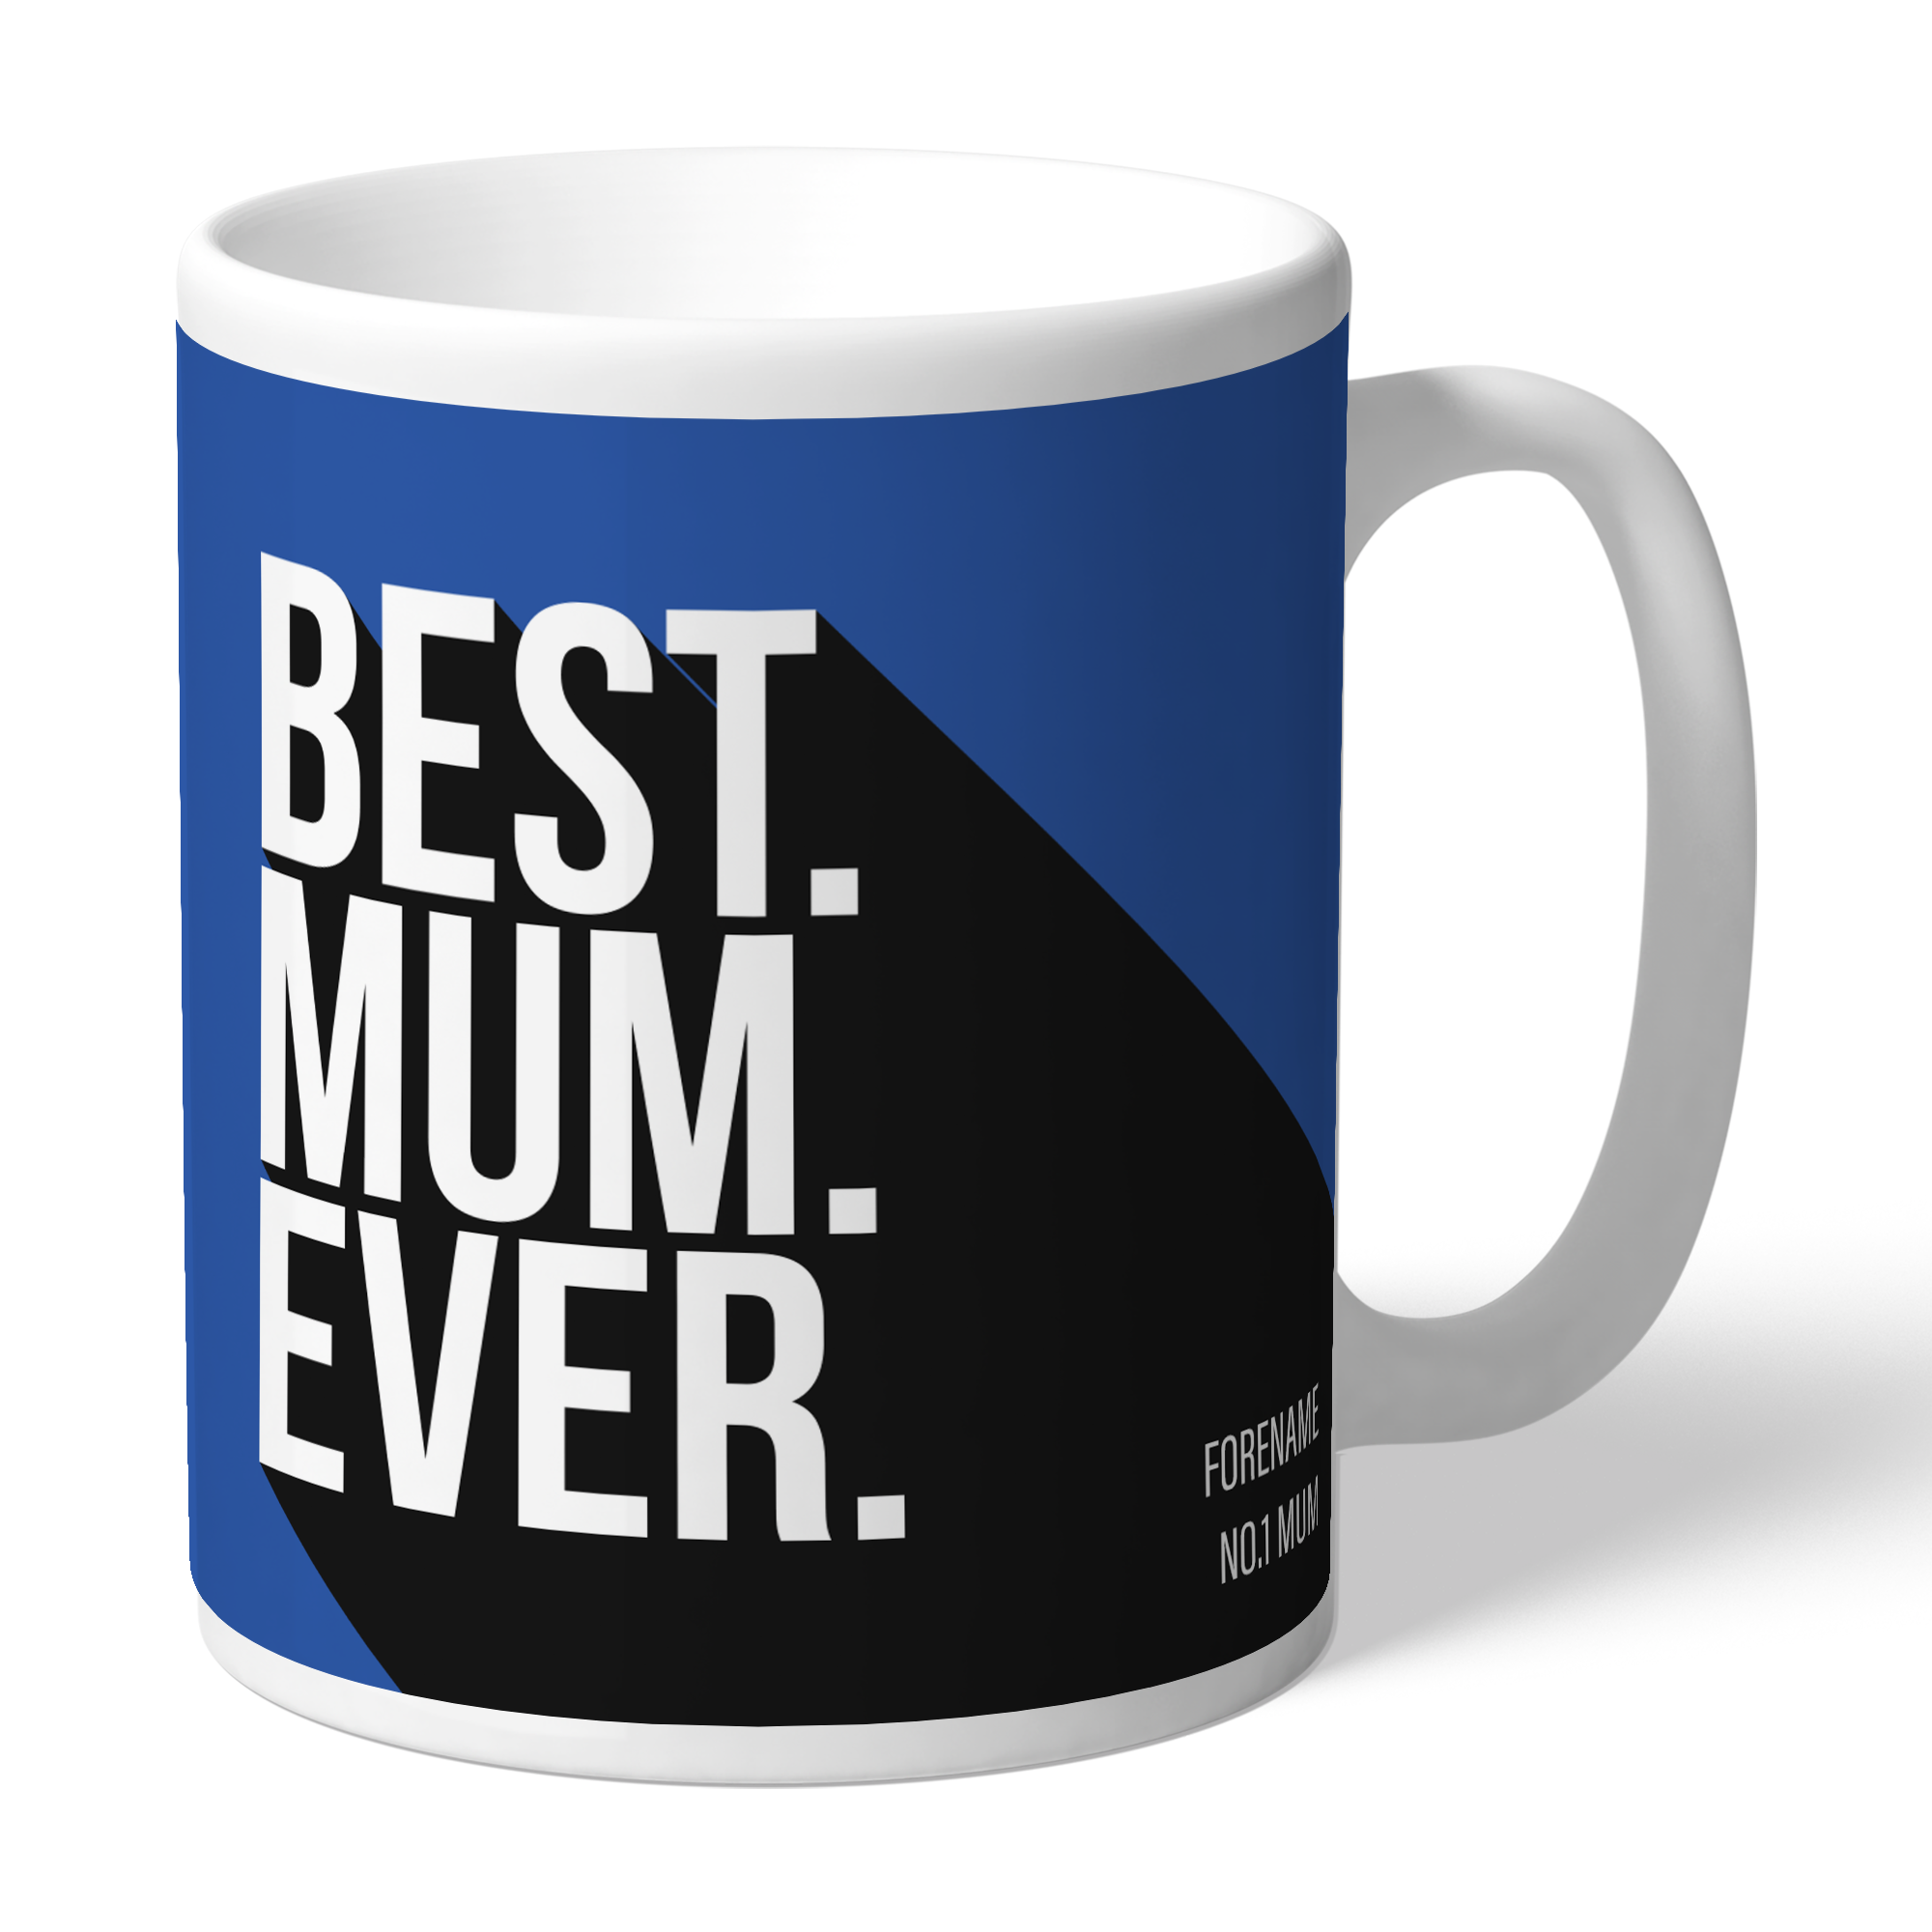 Sheffield Wednesday Best Mum Ever Mug